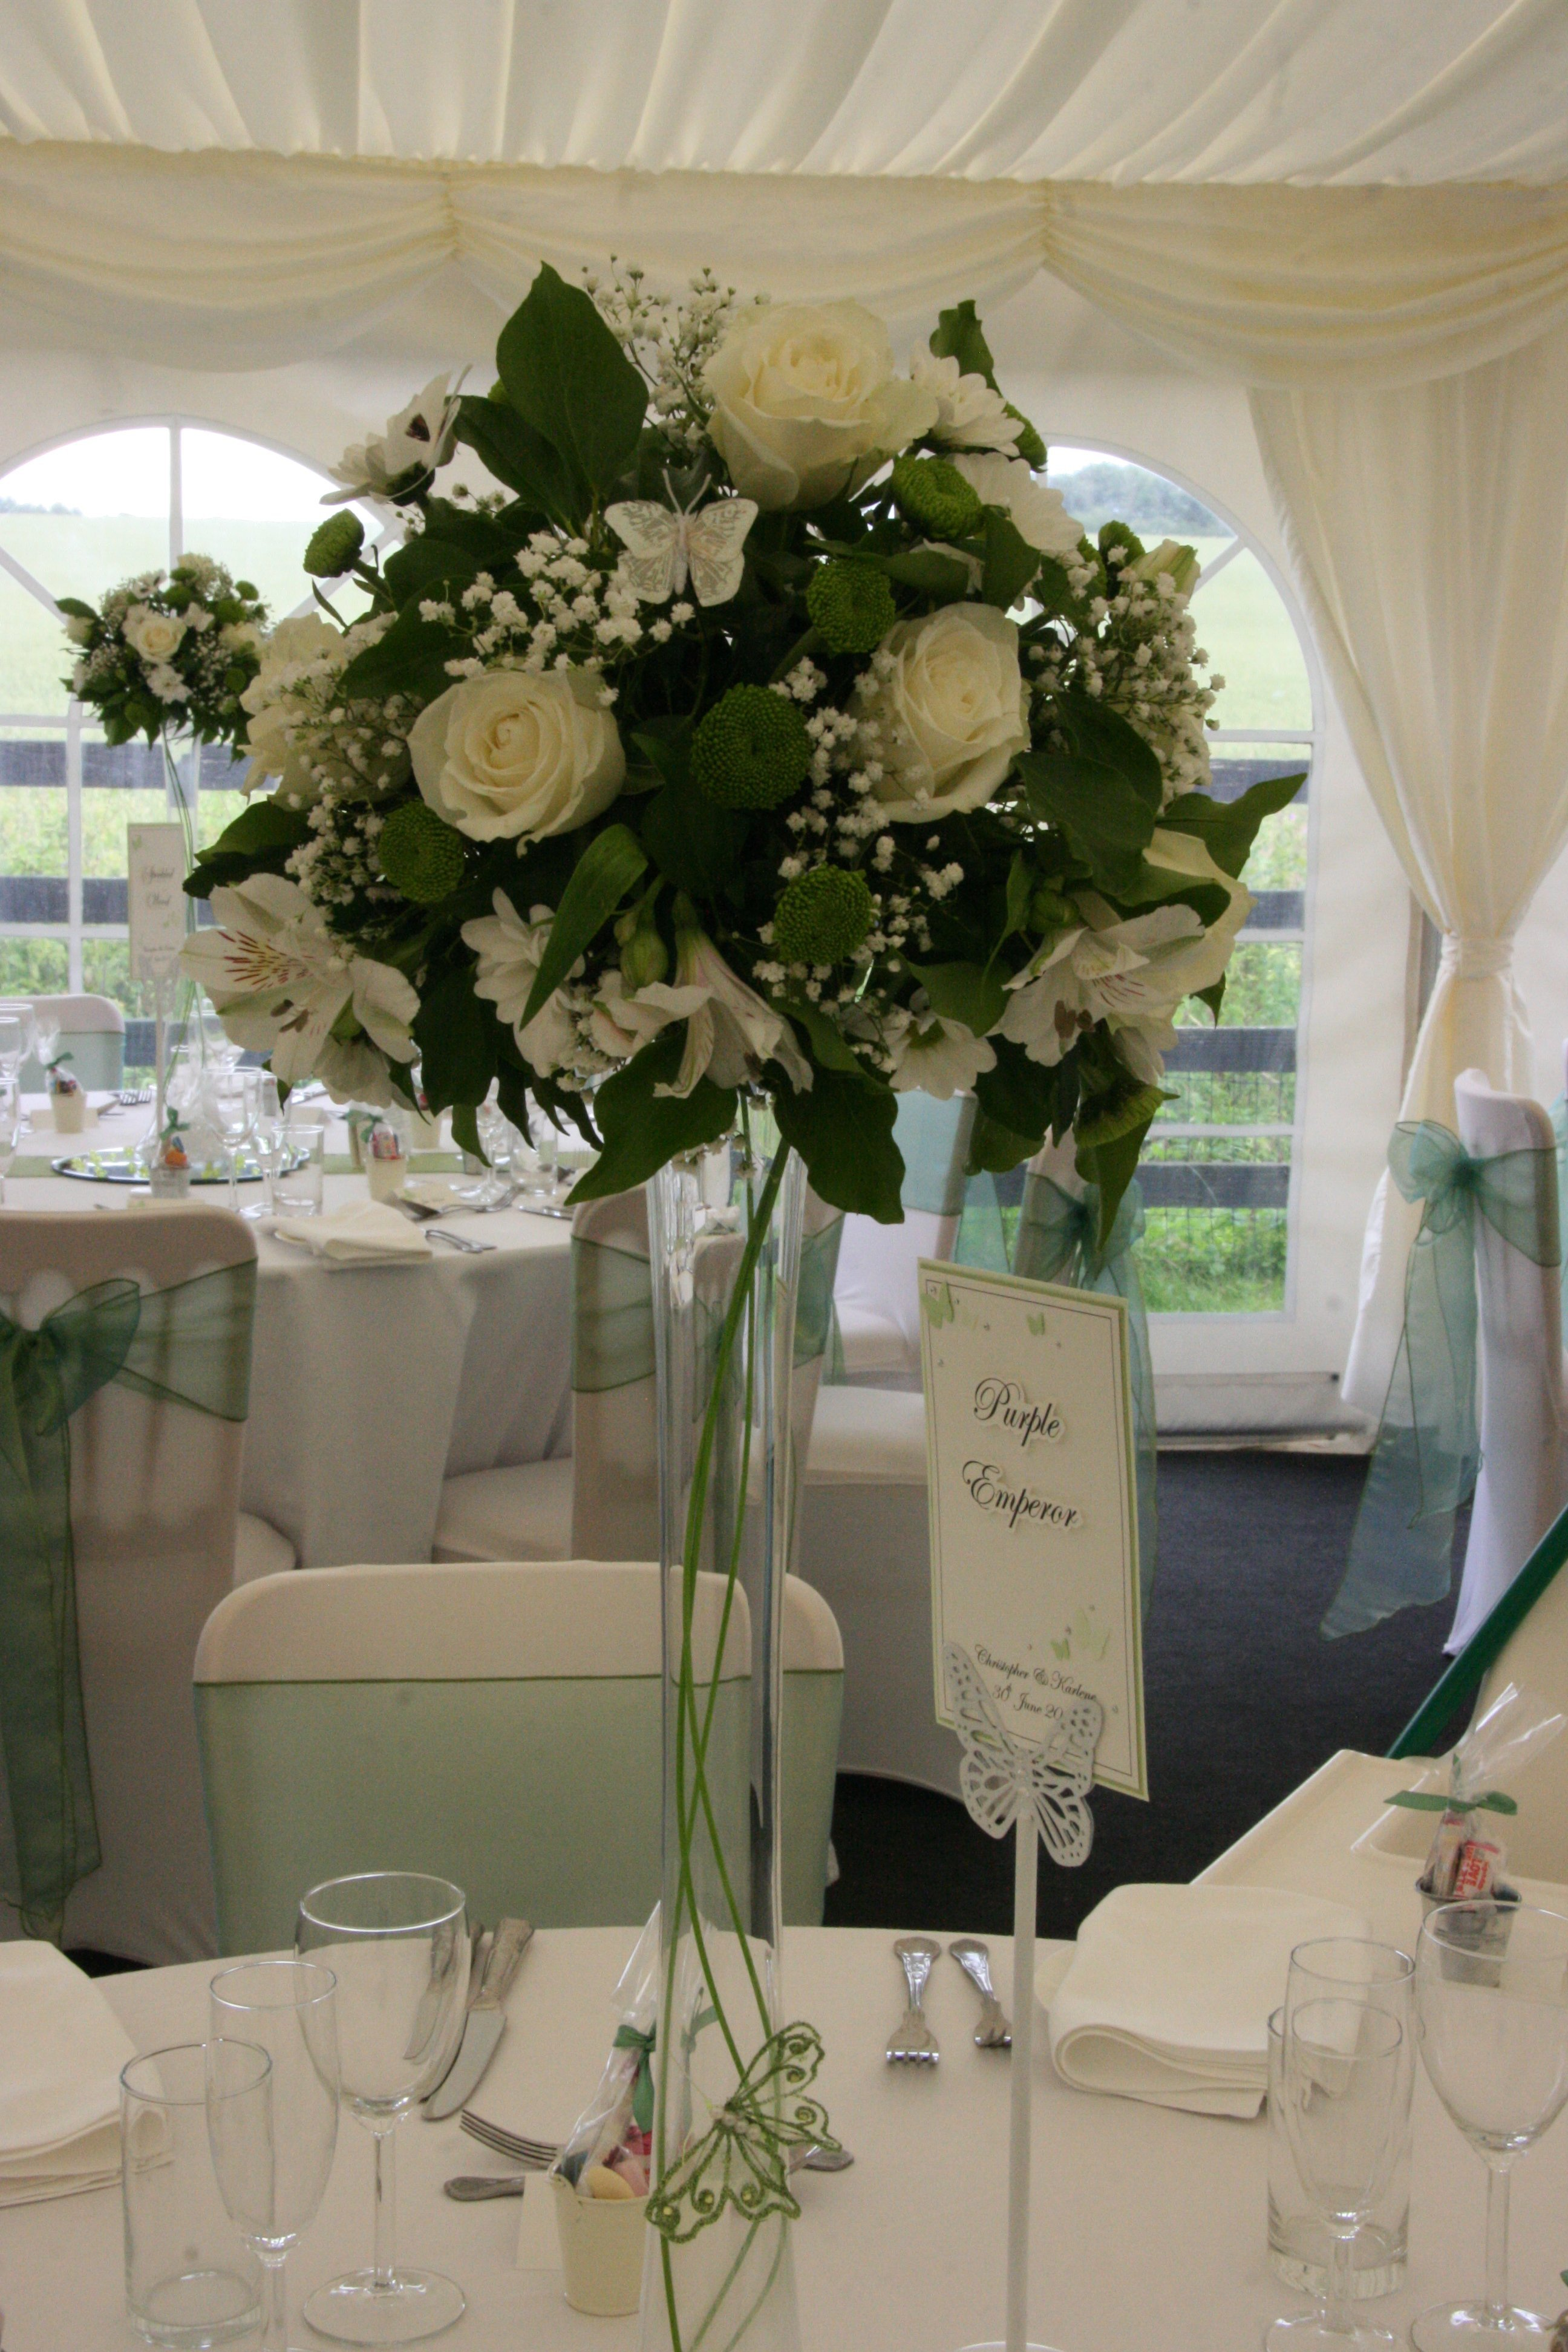 Green and white themed wedding table centrepiece flowers